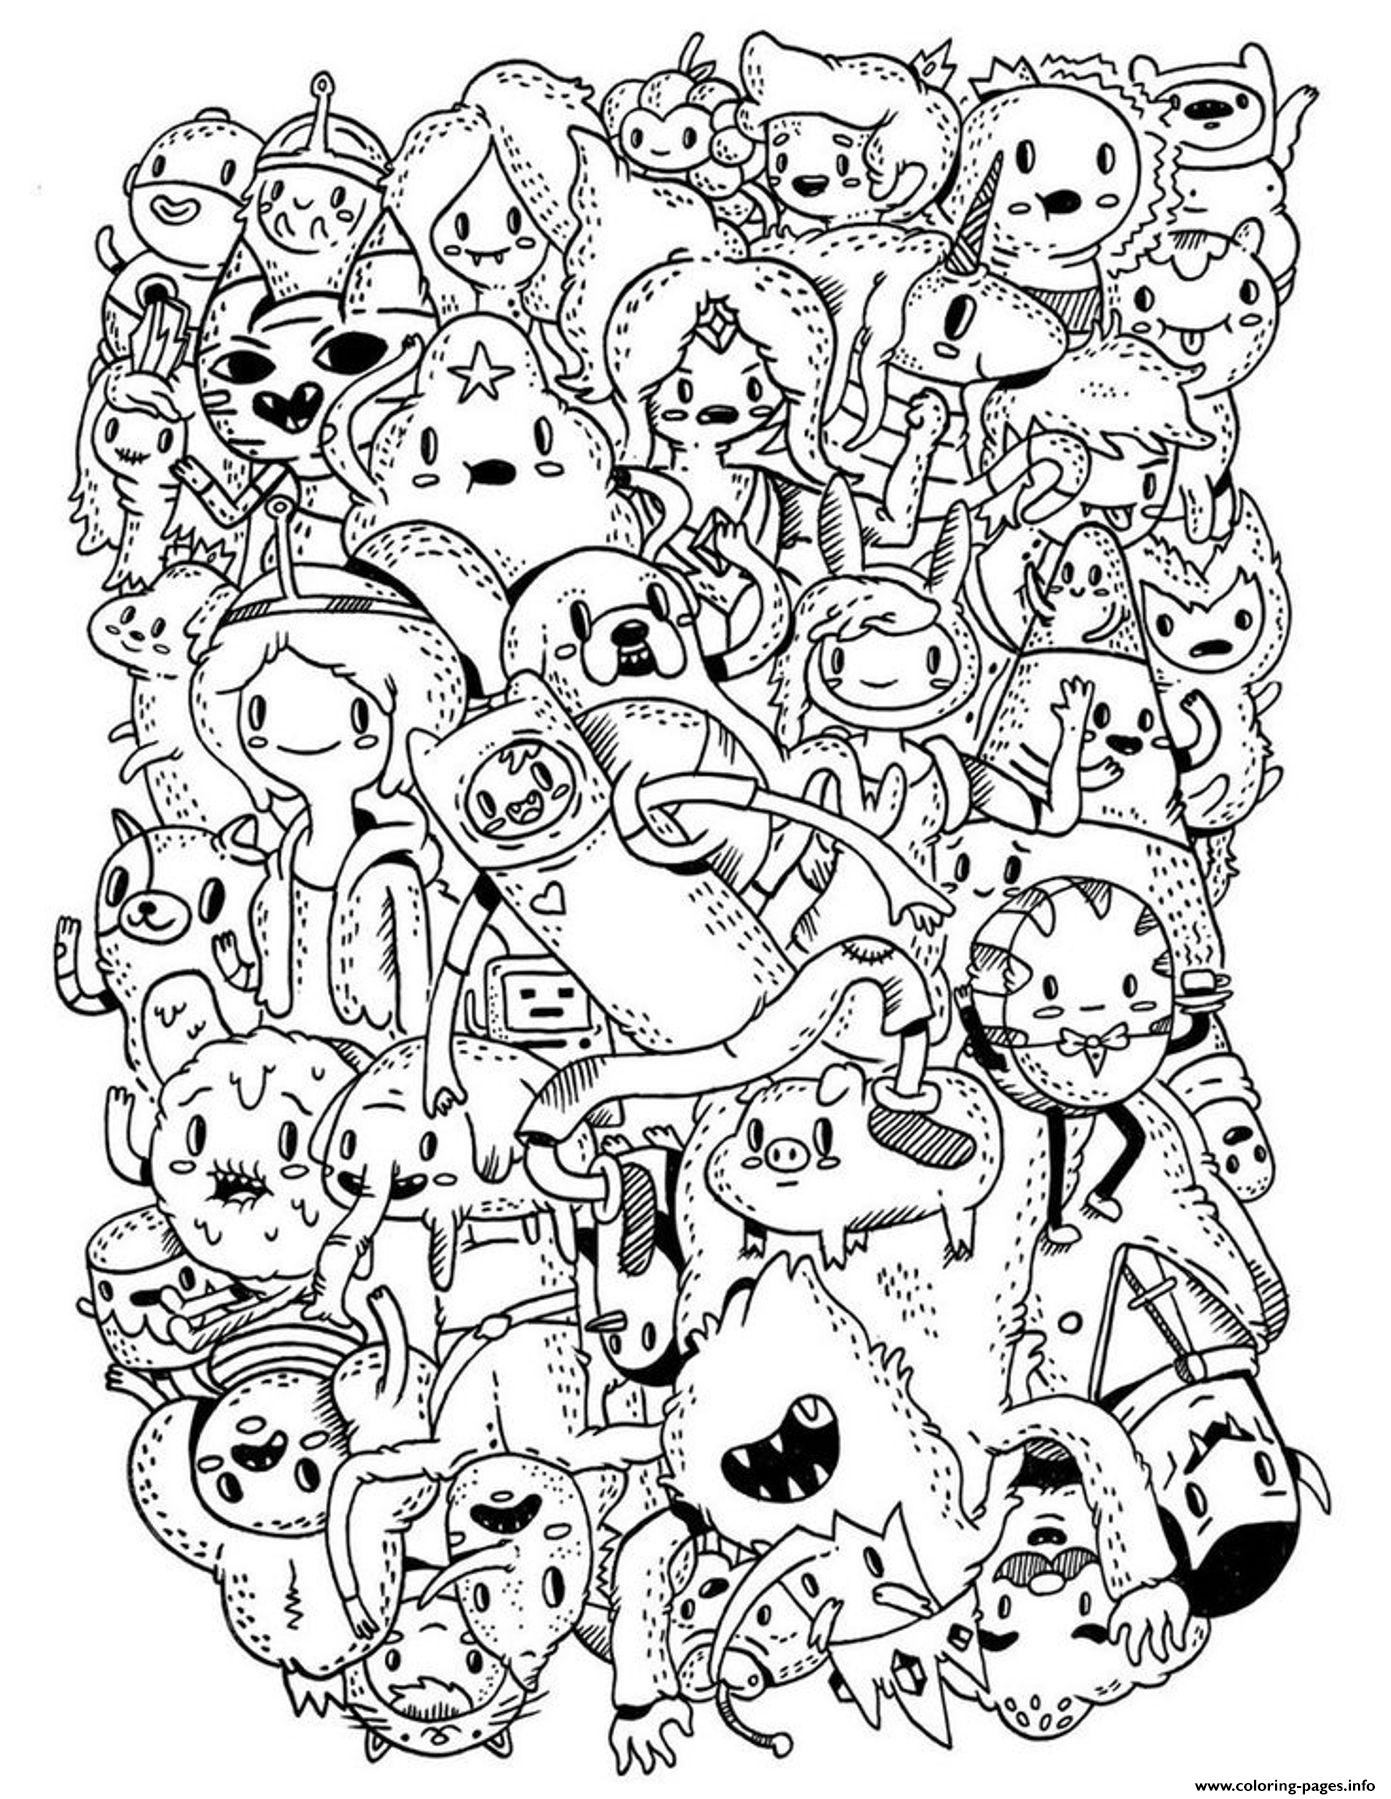 coloring adventure time adventure time s for kids1bd7 coloring pages printable adventure coloring time